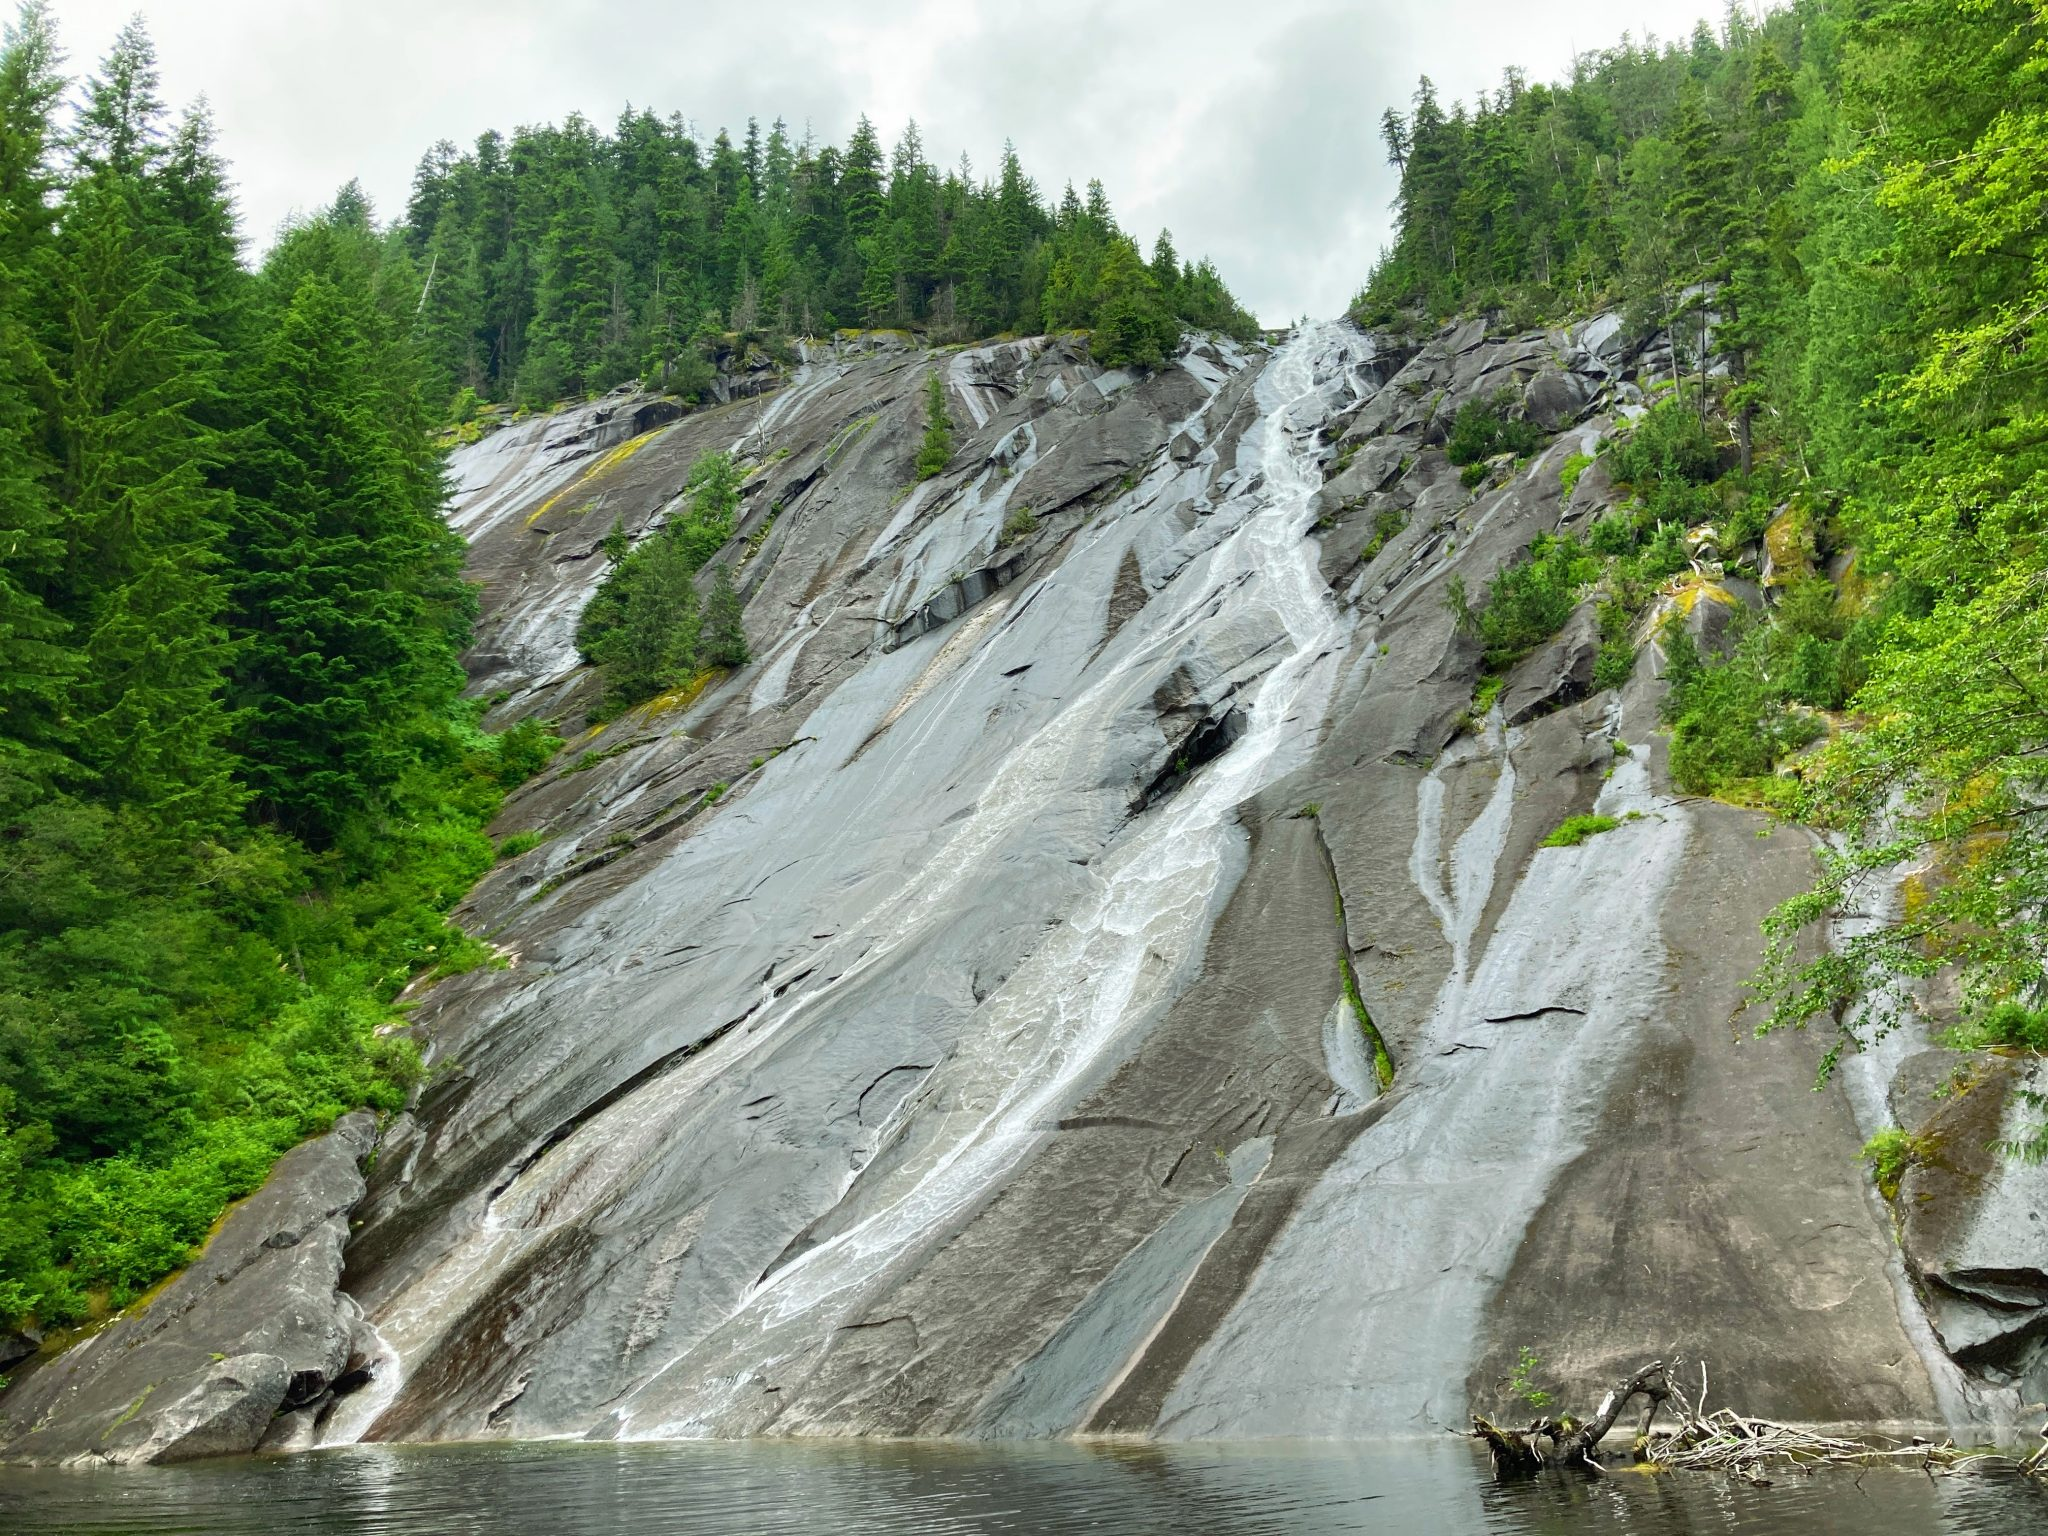 Otter Falls spills over a high rock and then spreads out over the flat surface of a rock next to a small lake. The giant rock face is surrounded by evergreen trees